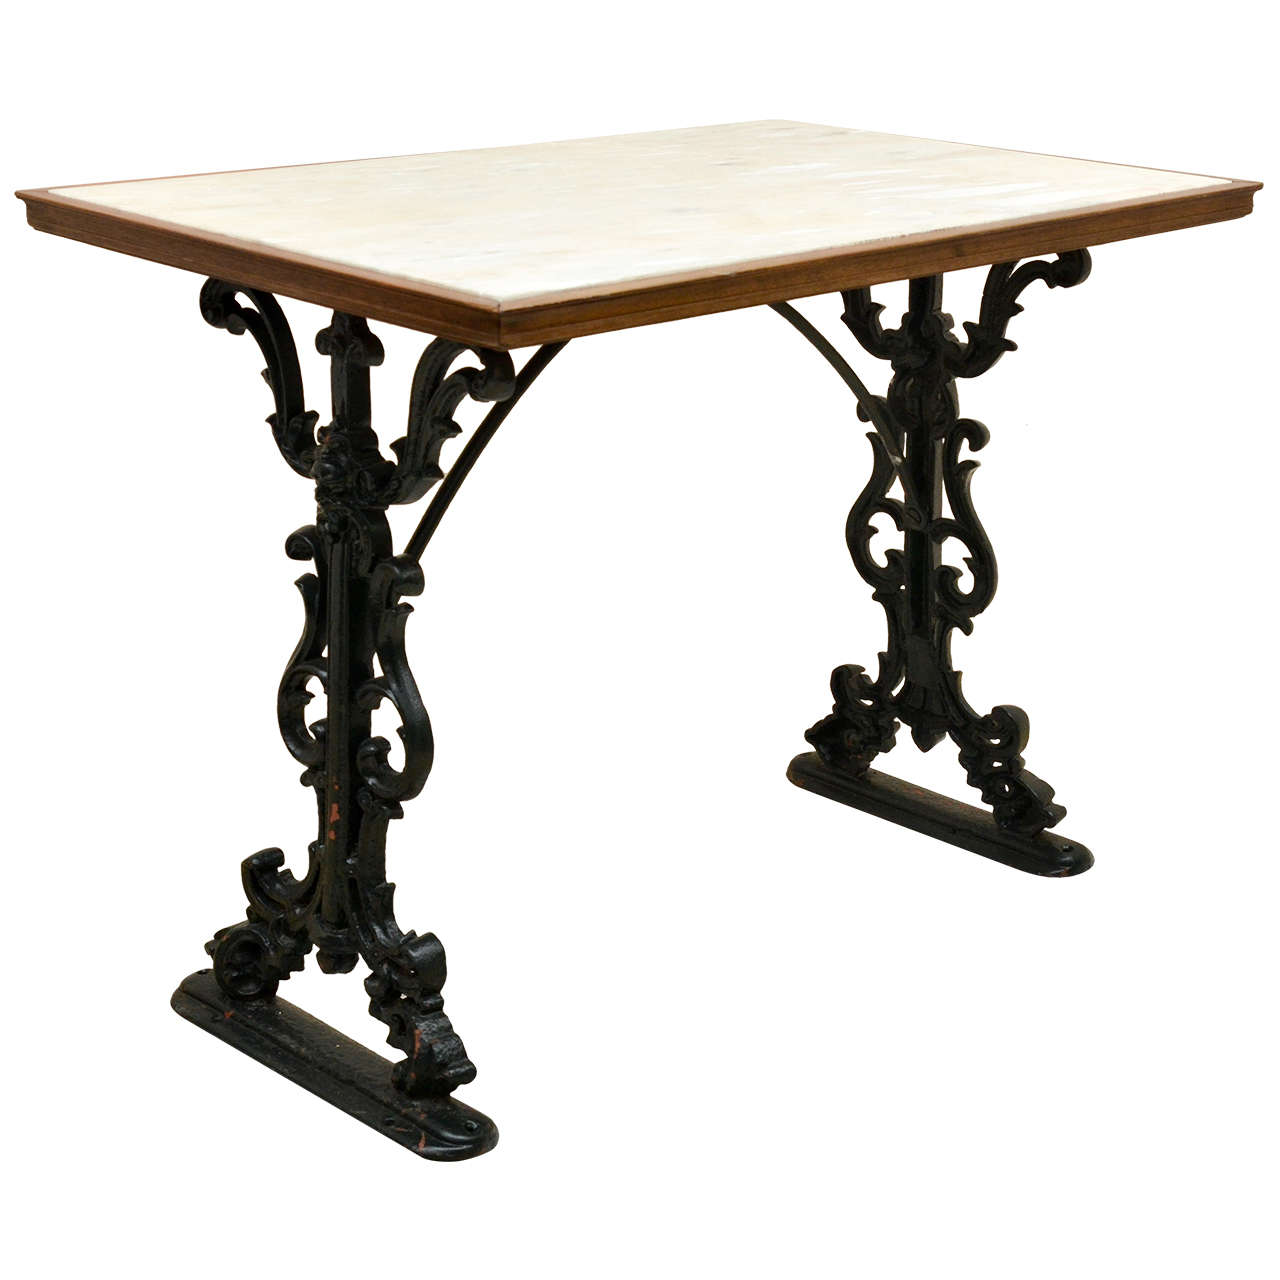 Victorian furniture table - English Victorian Cast Iron Rectangular Marbletop Pub Table 1